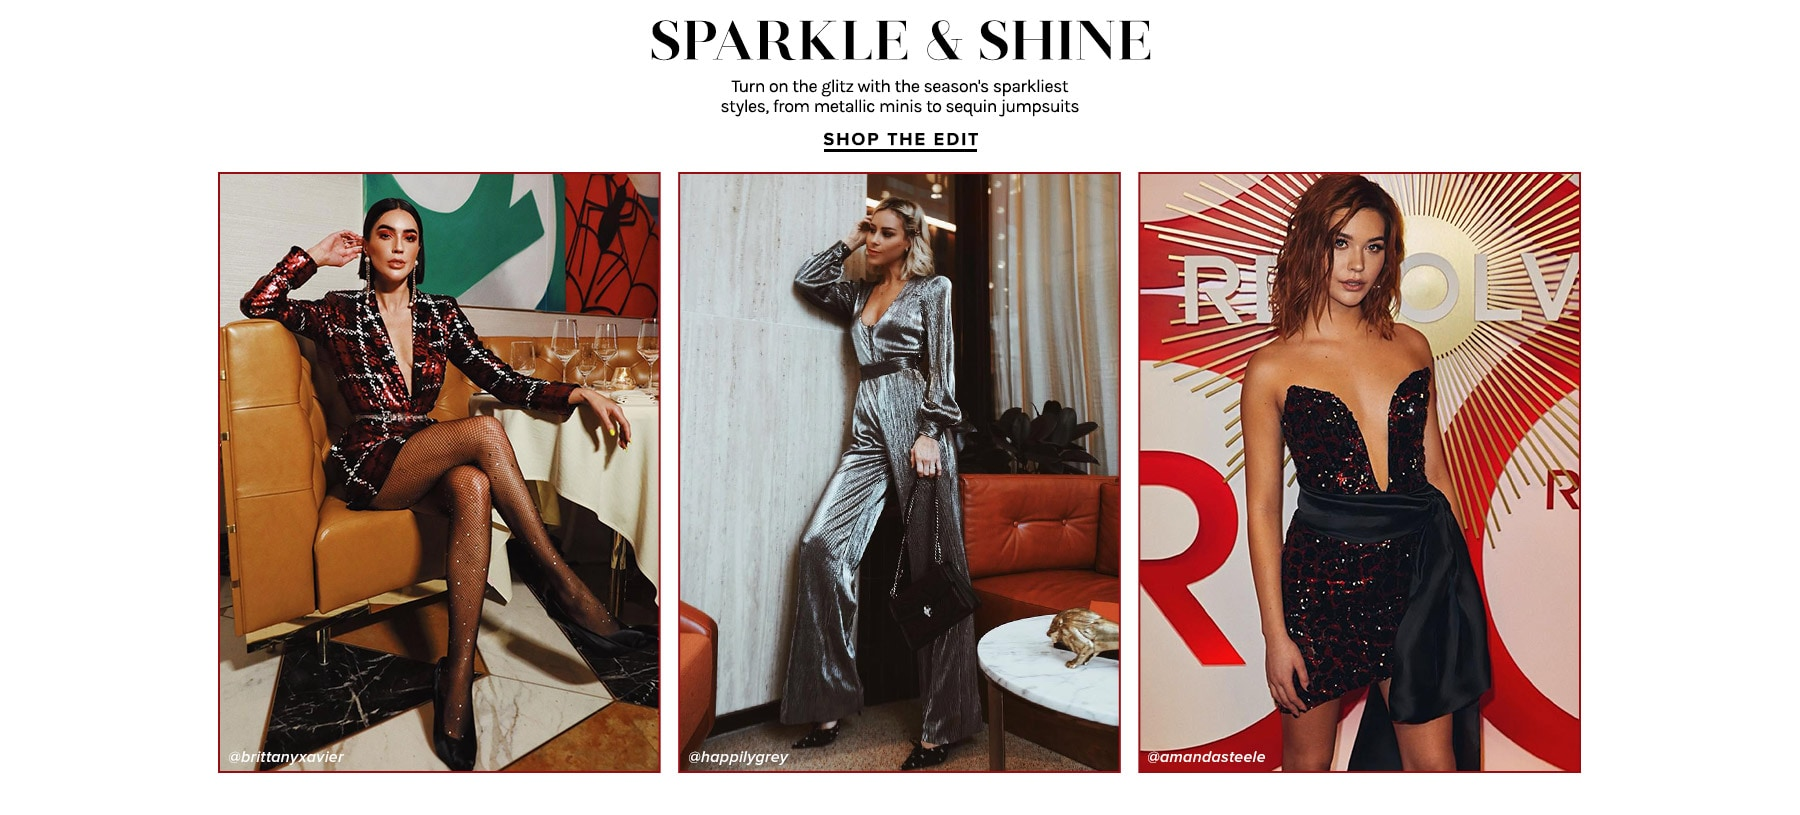 SPARKLE & SHINE. Turn on the glitz with the season's sparkliest styles, from metallic minis to sequin jumpsuits. SHop The Edit